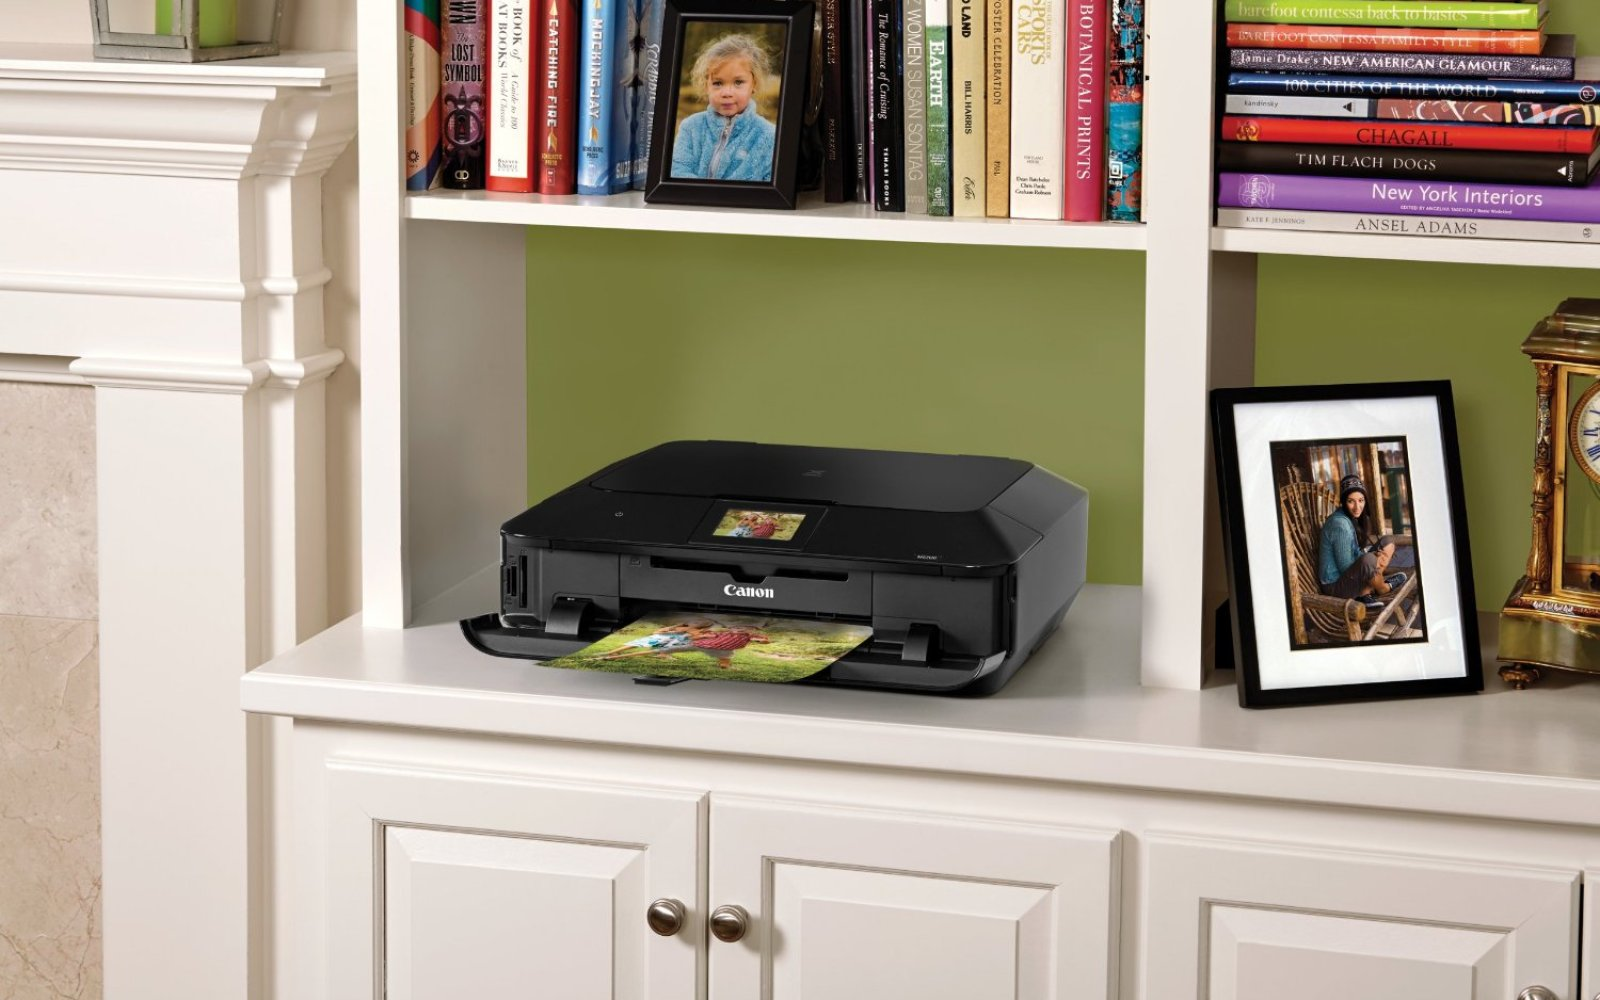 Don't go from store to store to find the best holiday prices for Walmart printers, we've got them here!